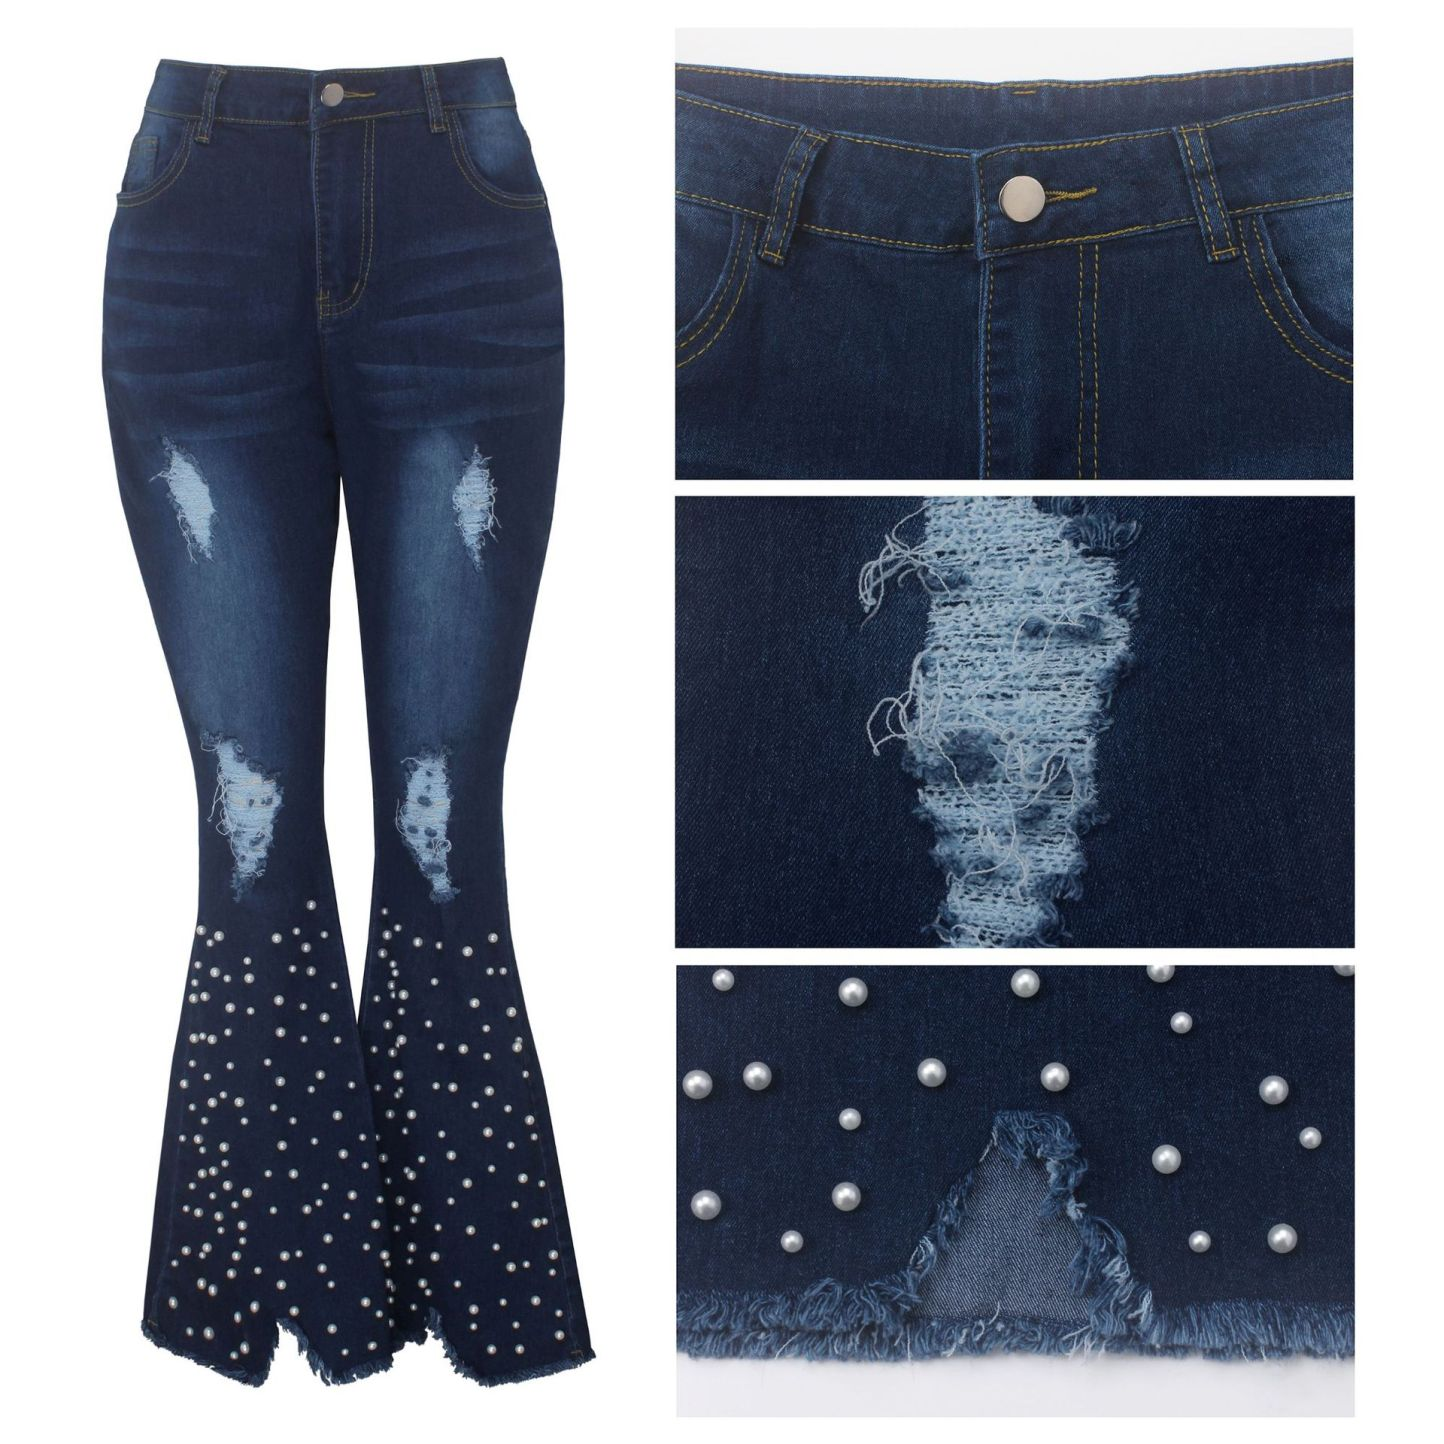 Jeans Pants Women Pearl Studded Jeans Denim Flare Pants Skinny Stretch Ripped Beading Jeans Chic Bottoms